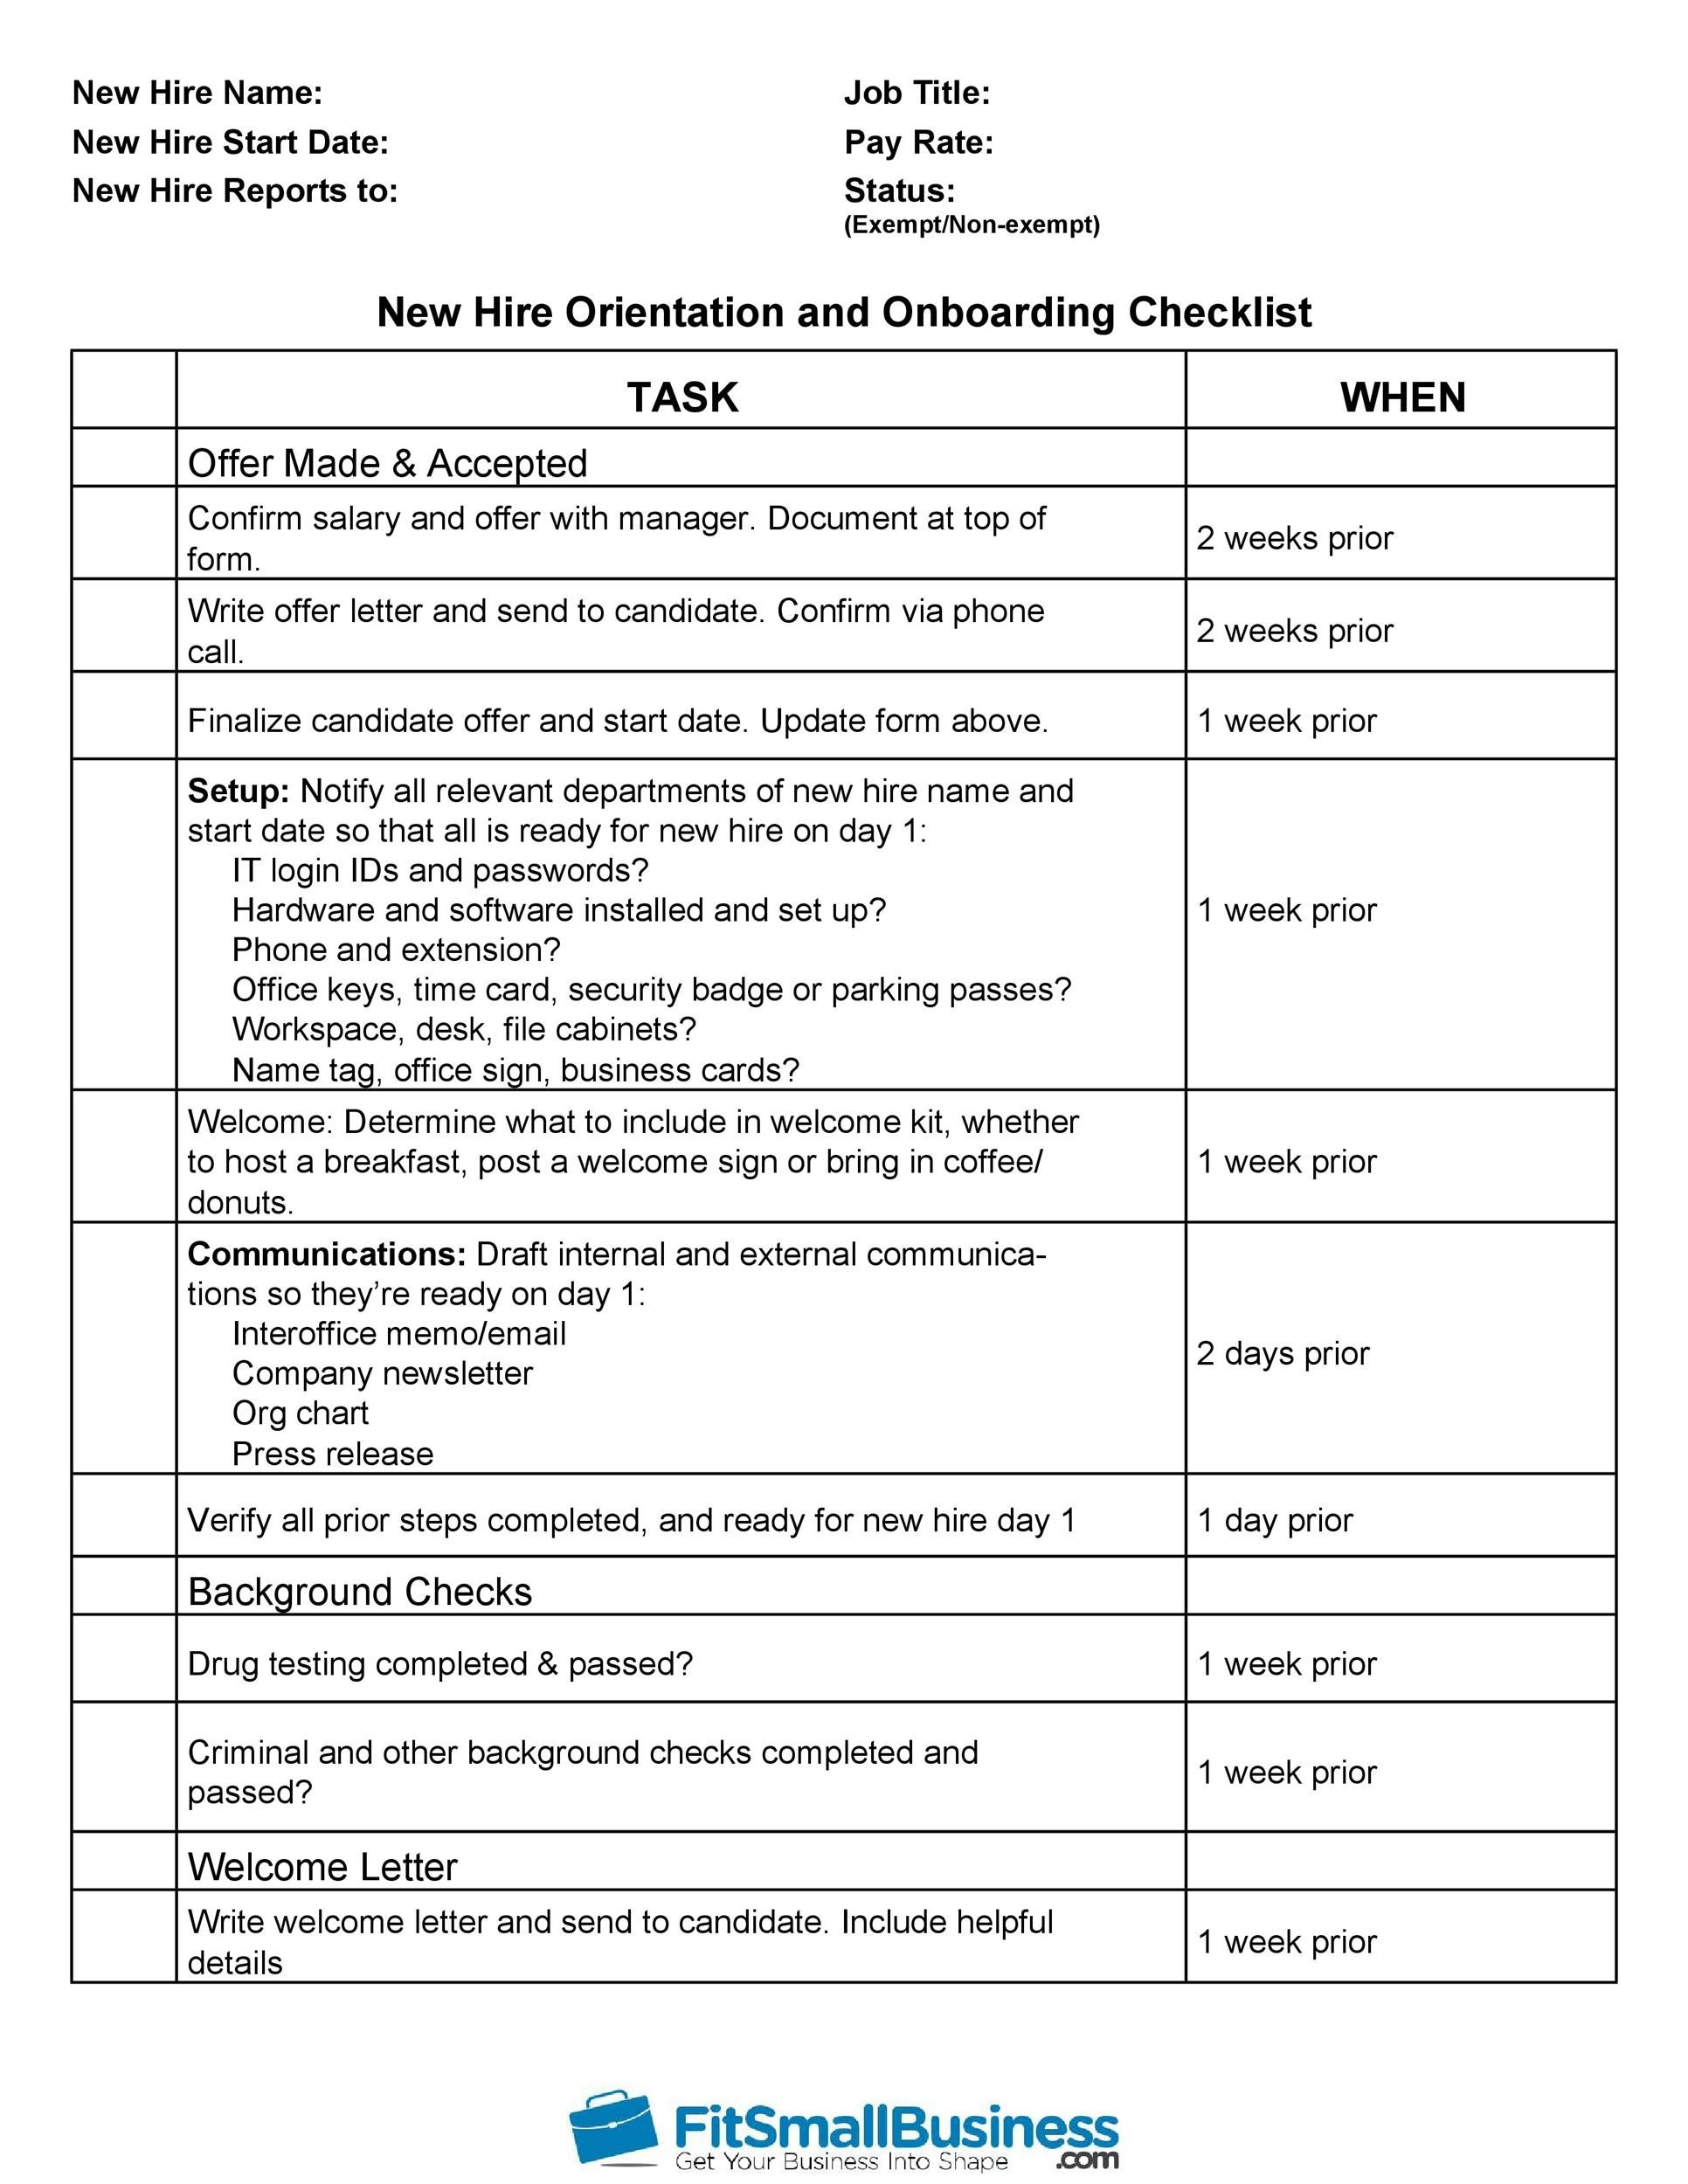 Free new hire checklist 05